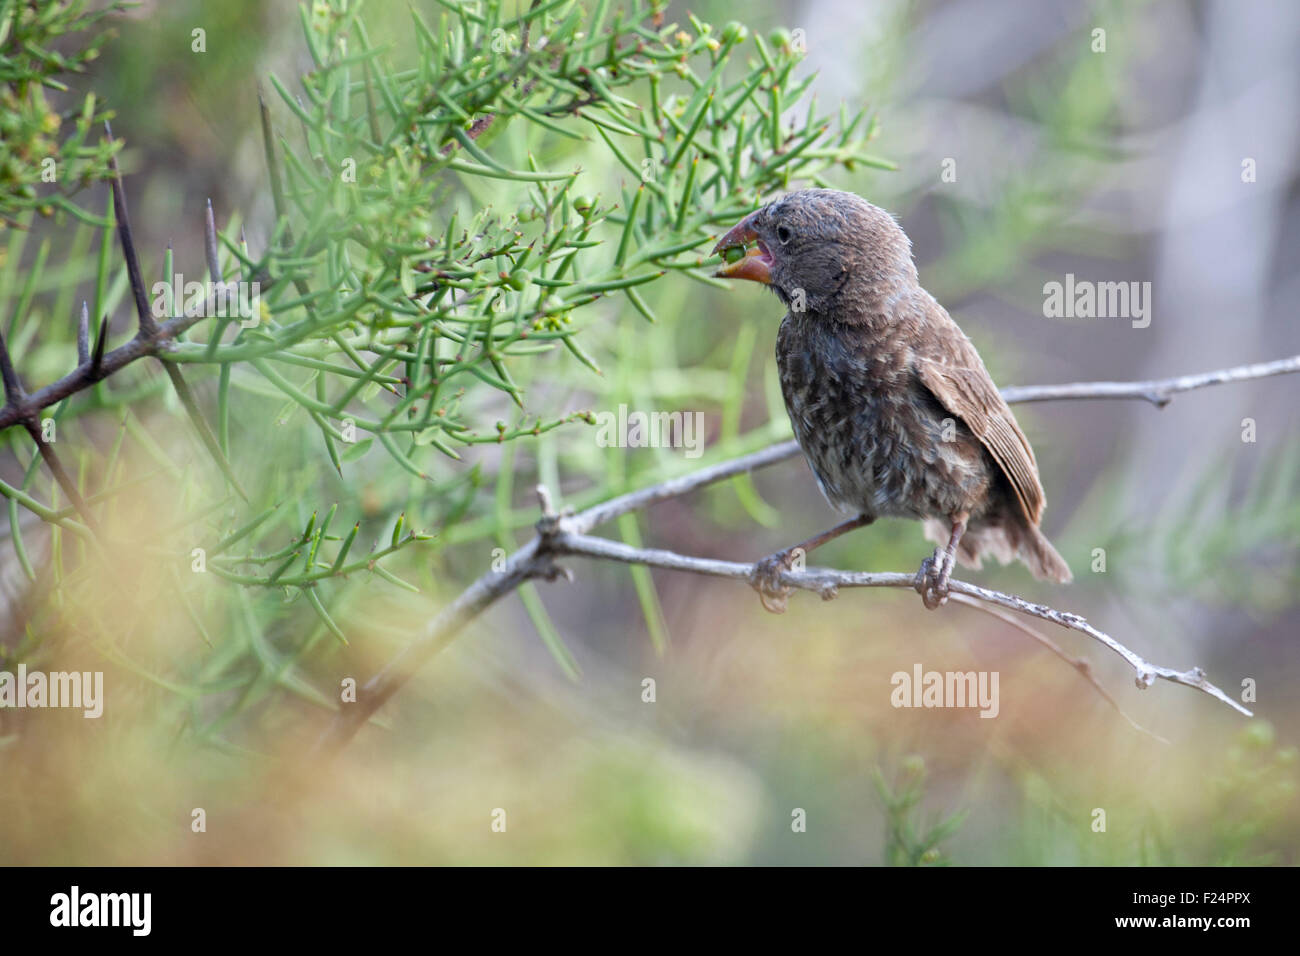 Galapagos finch eating berry - Stock Image